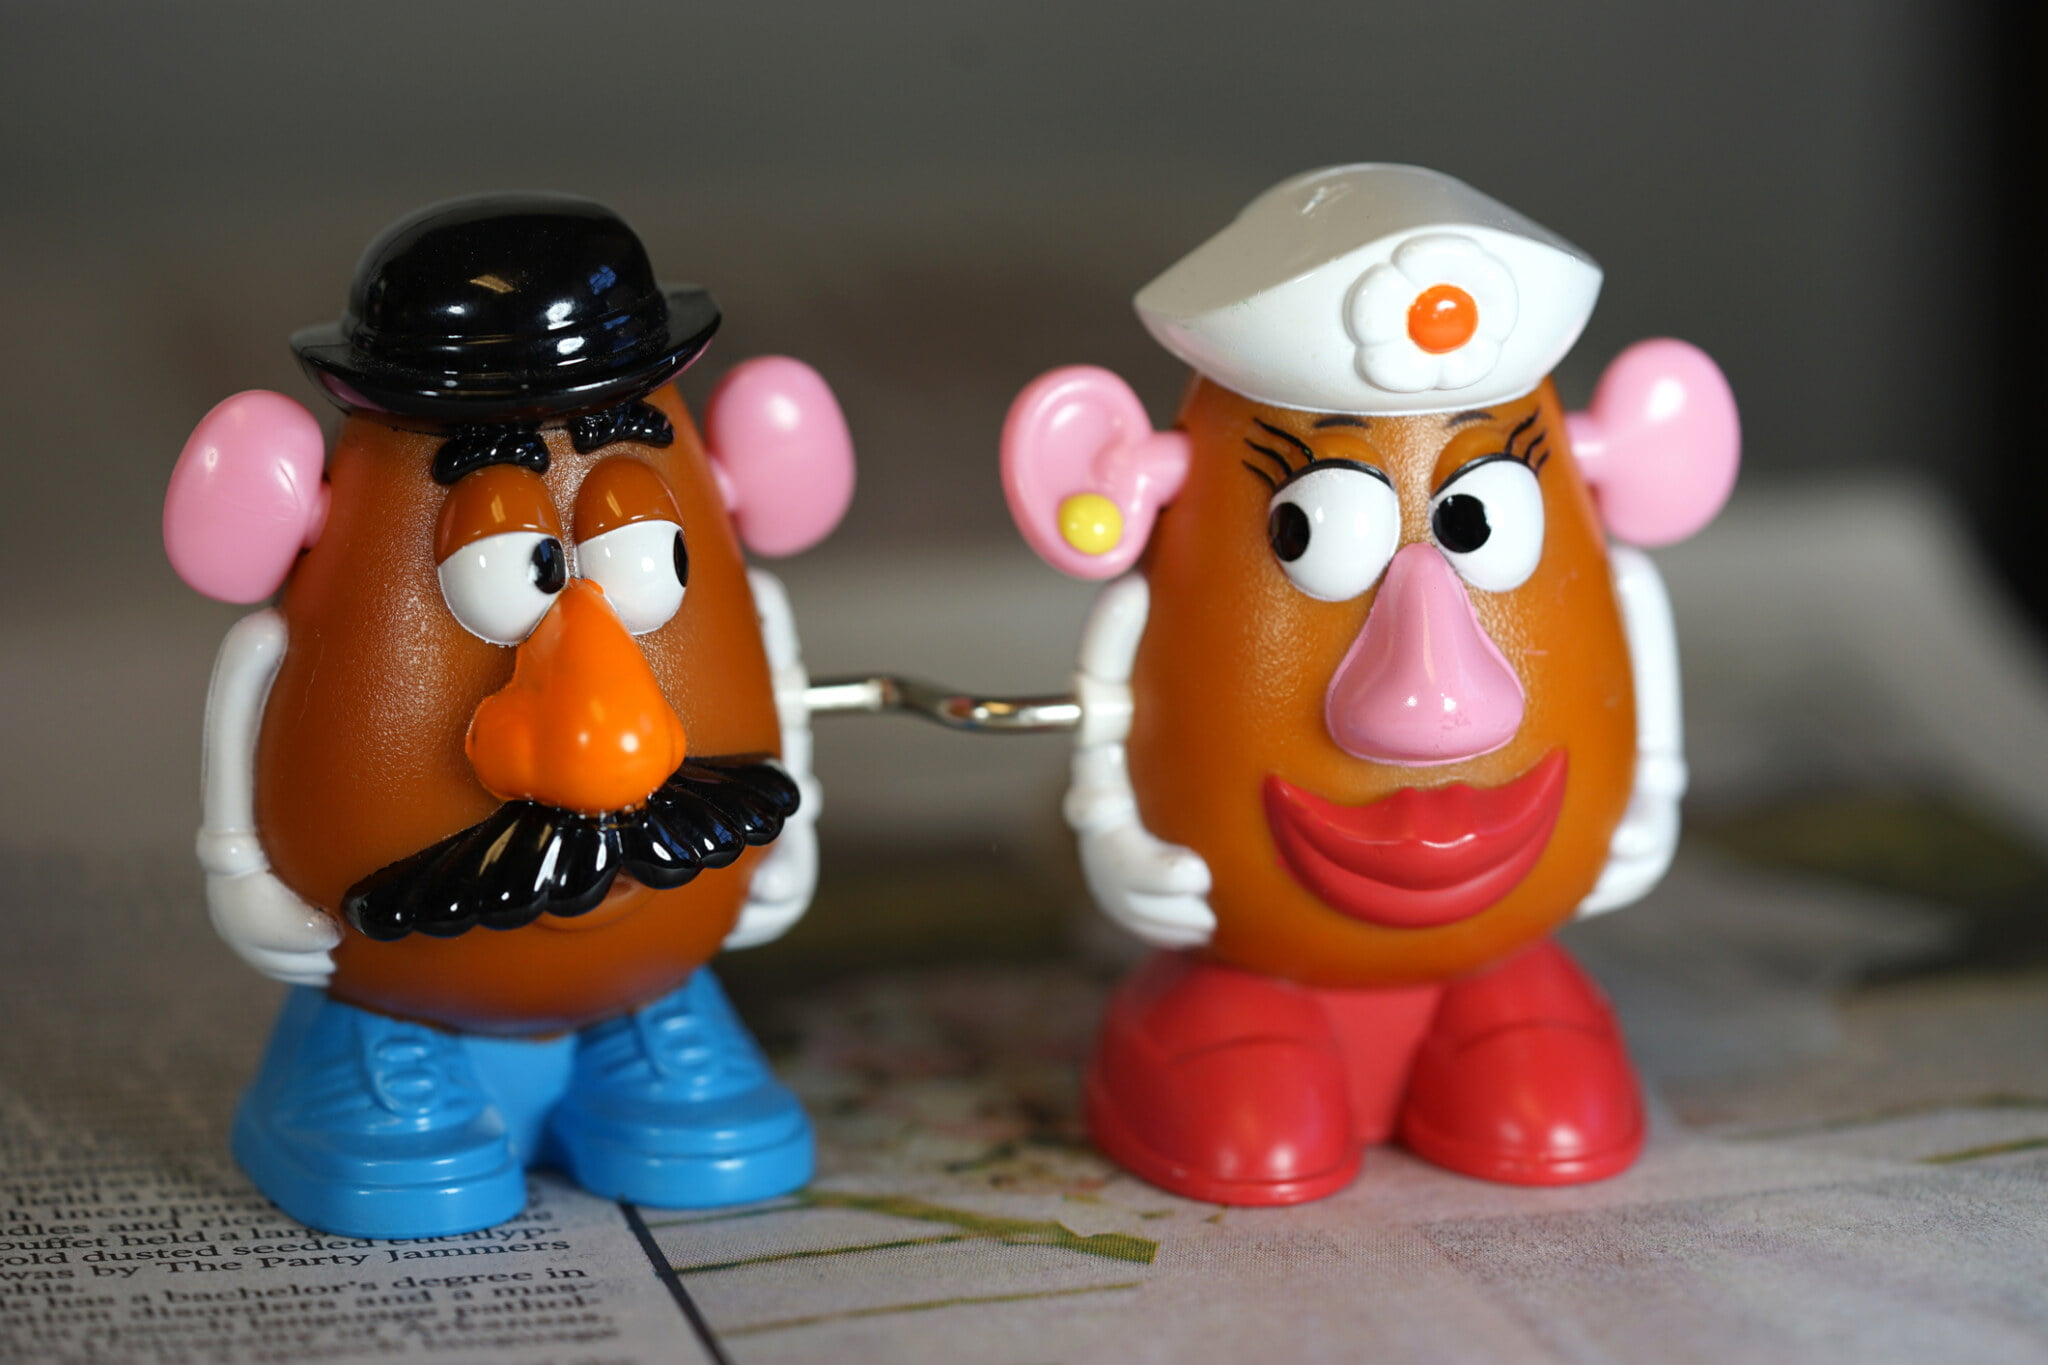 Saudi Arabia to Require 'Potato Head' Toy to Have Face Veiled